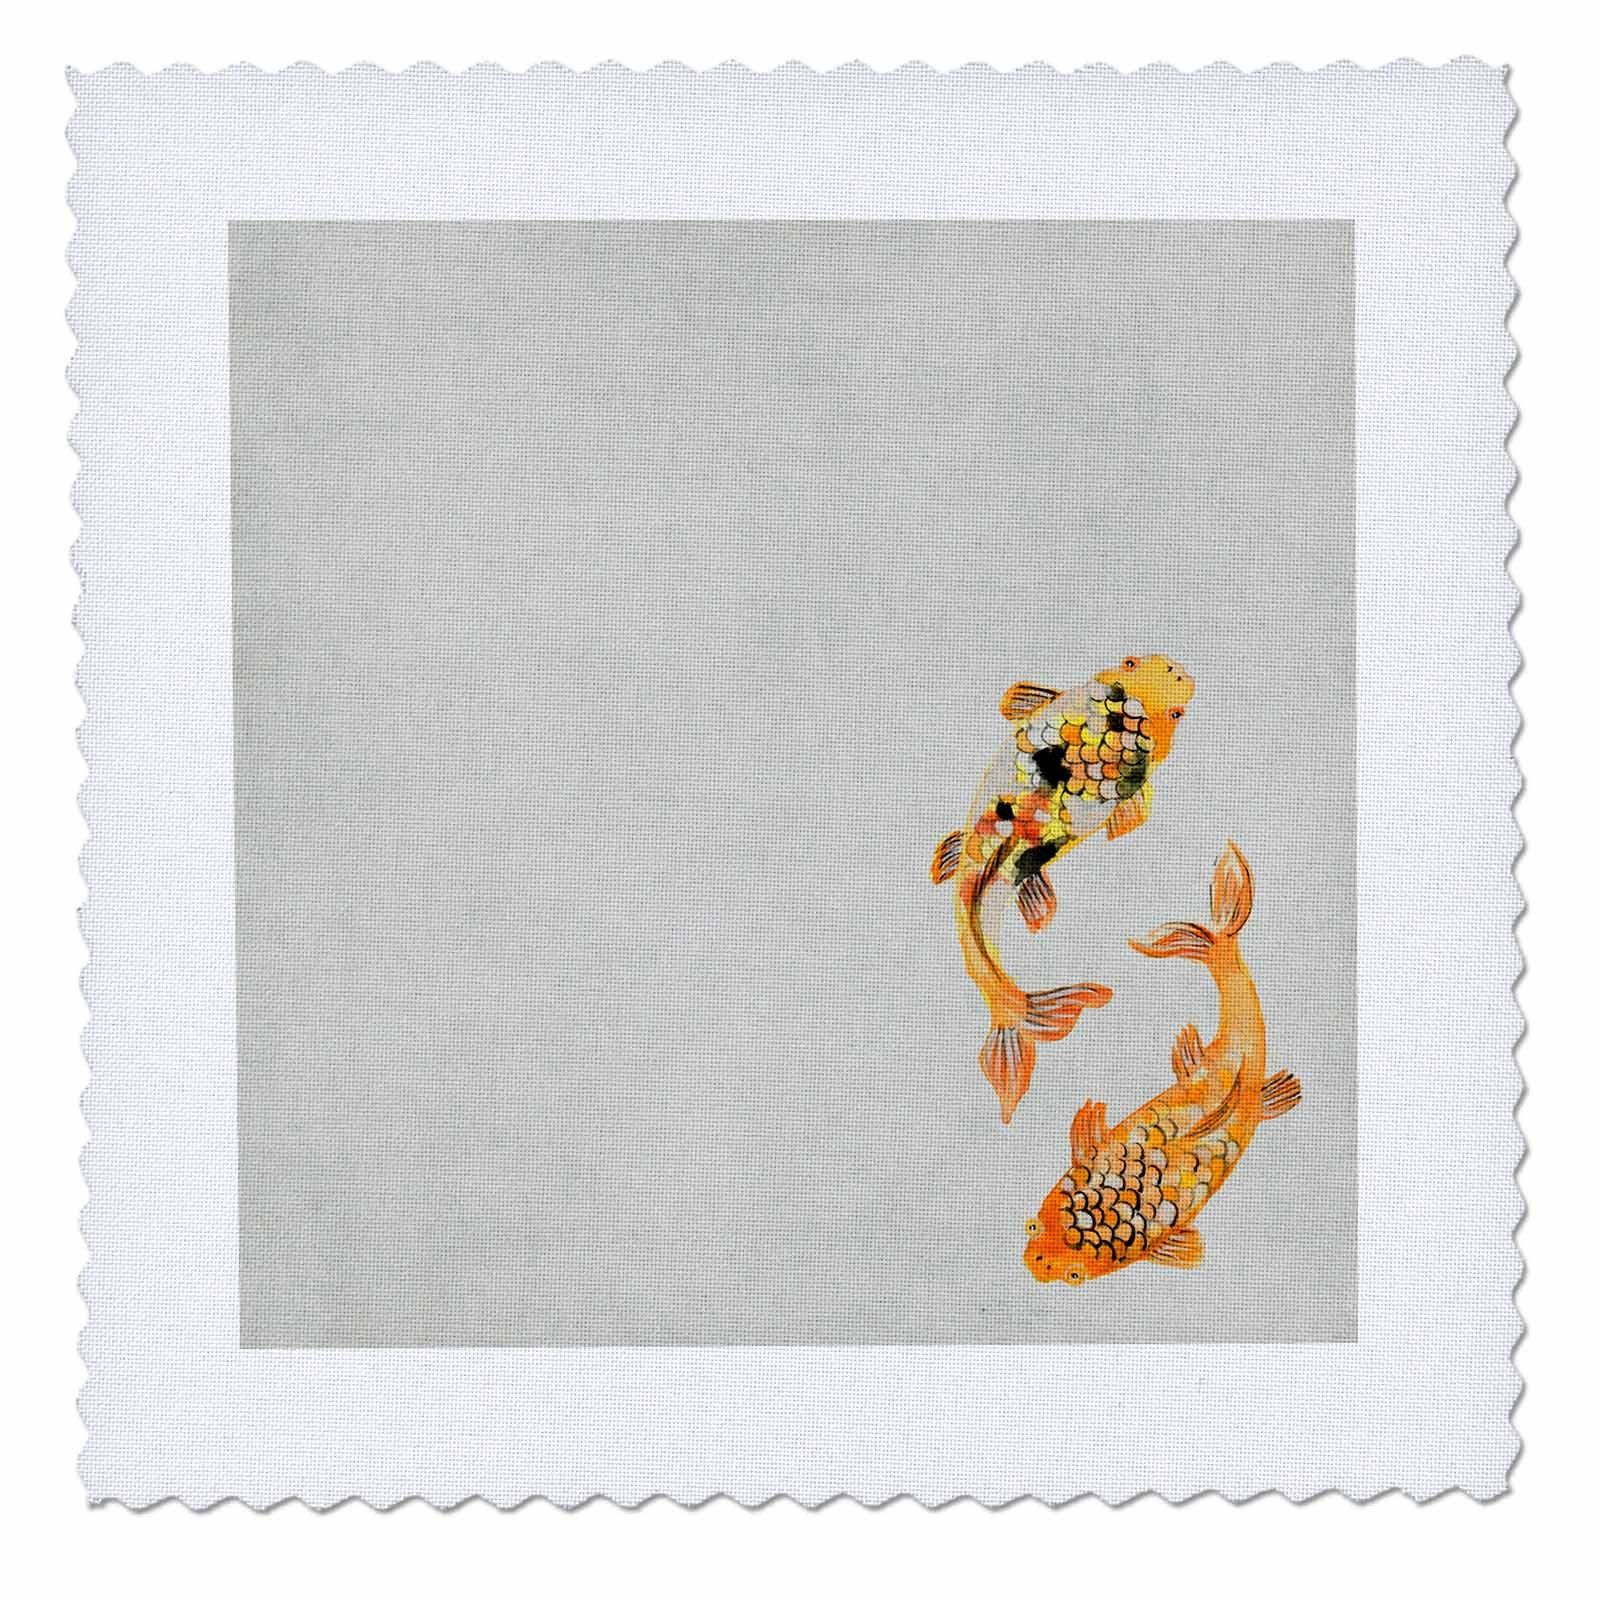 3dRose Sven Herkenrath Animal - Asia Koi Fish Fishes in Vintage and Retro Look - 20x20 inch quilt square (qs_280241_8)